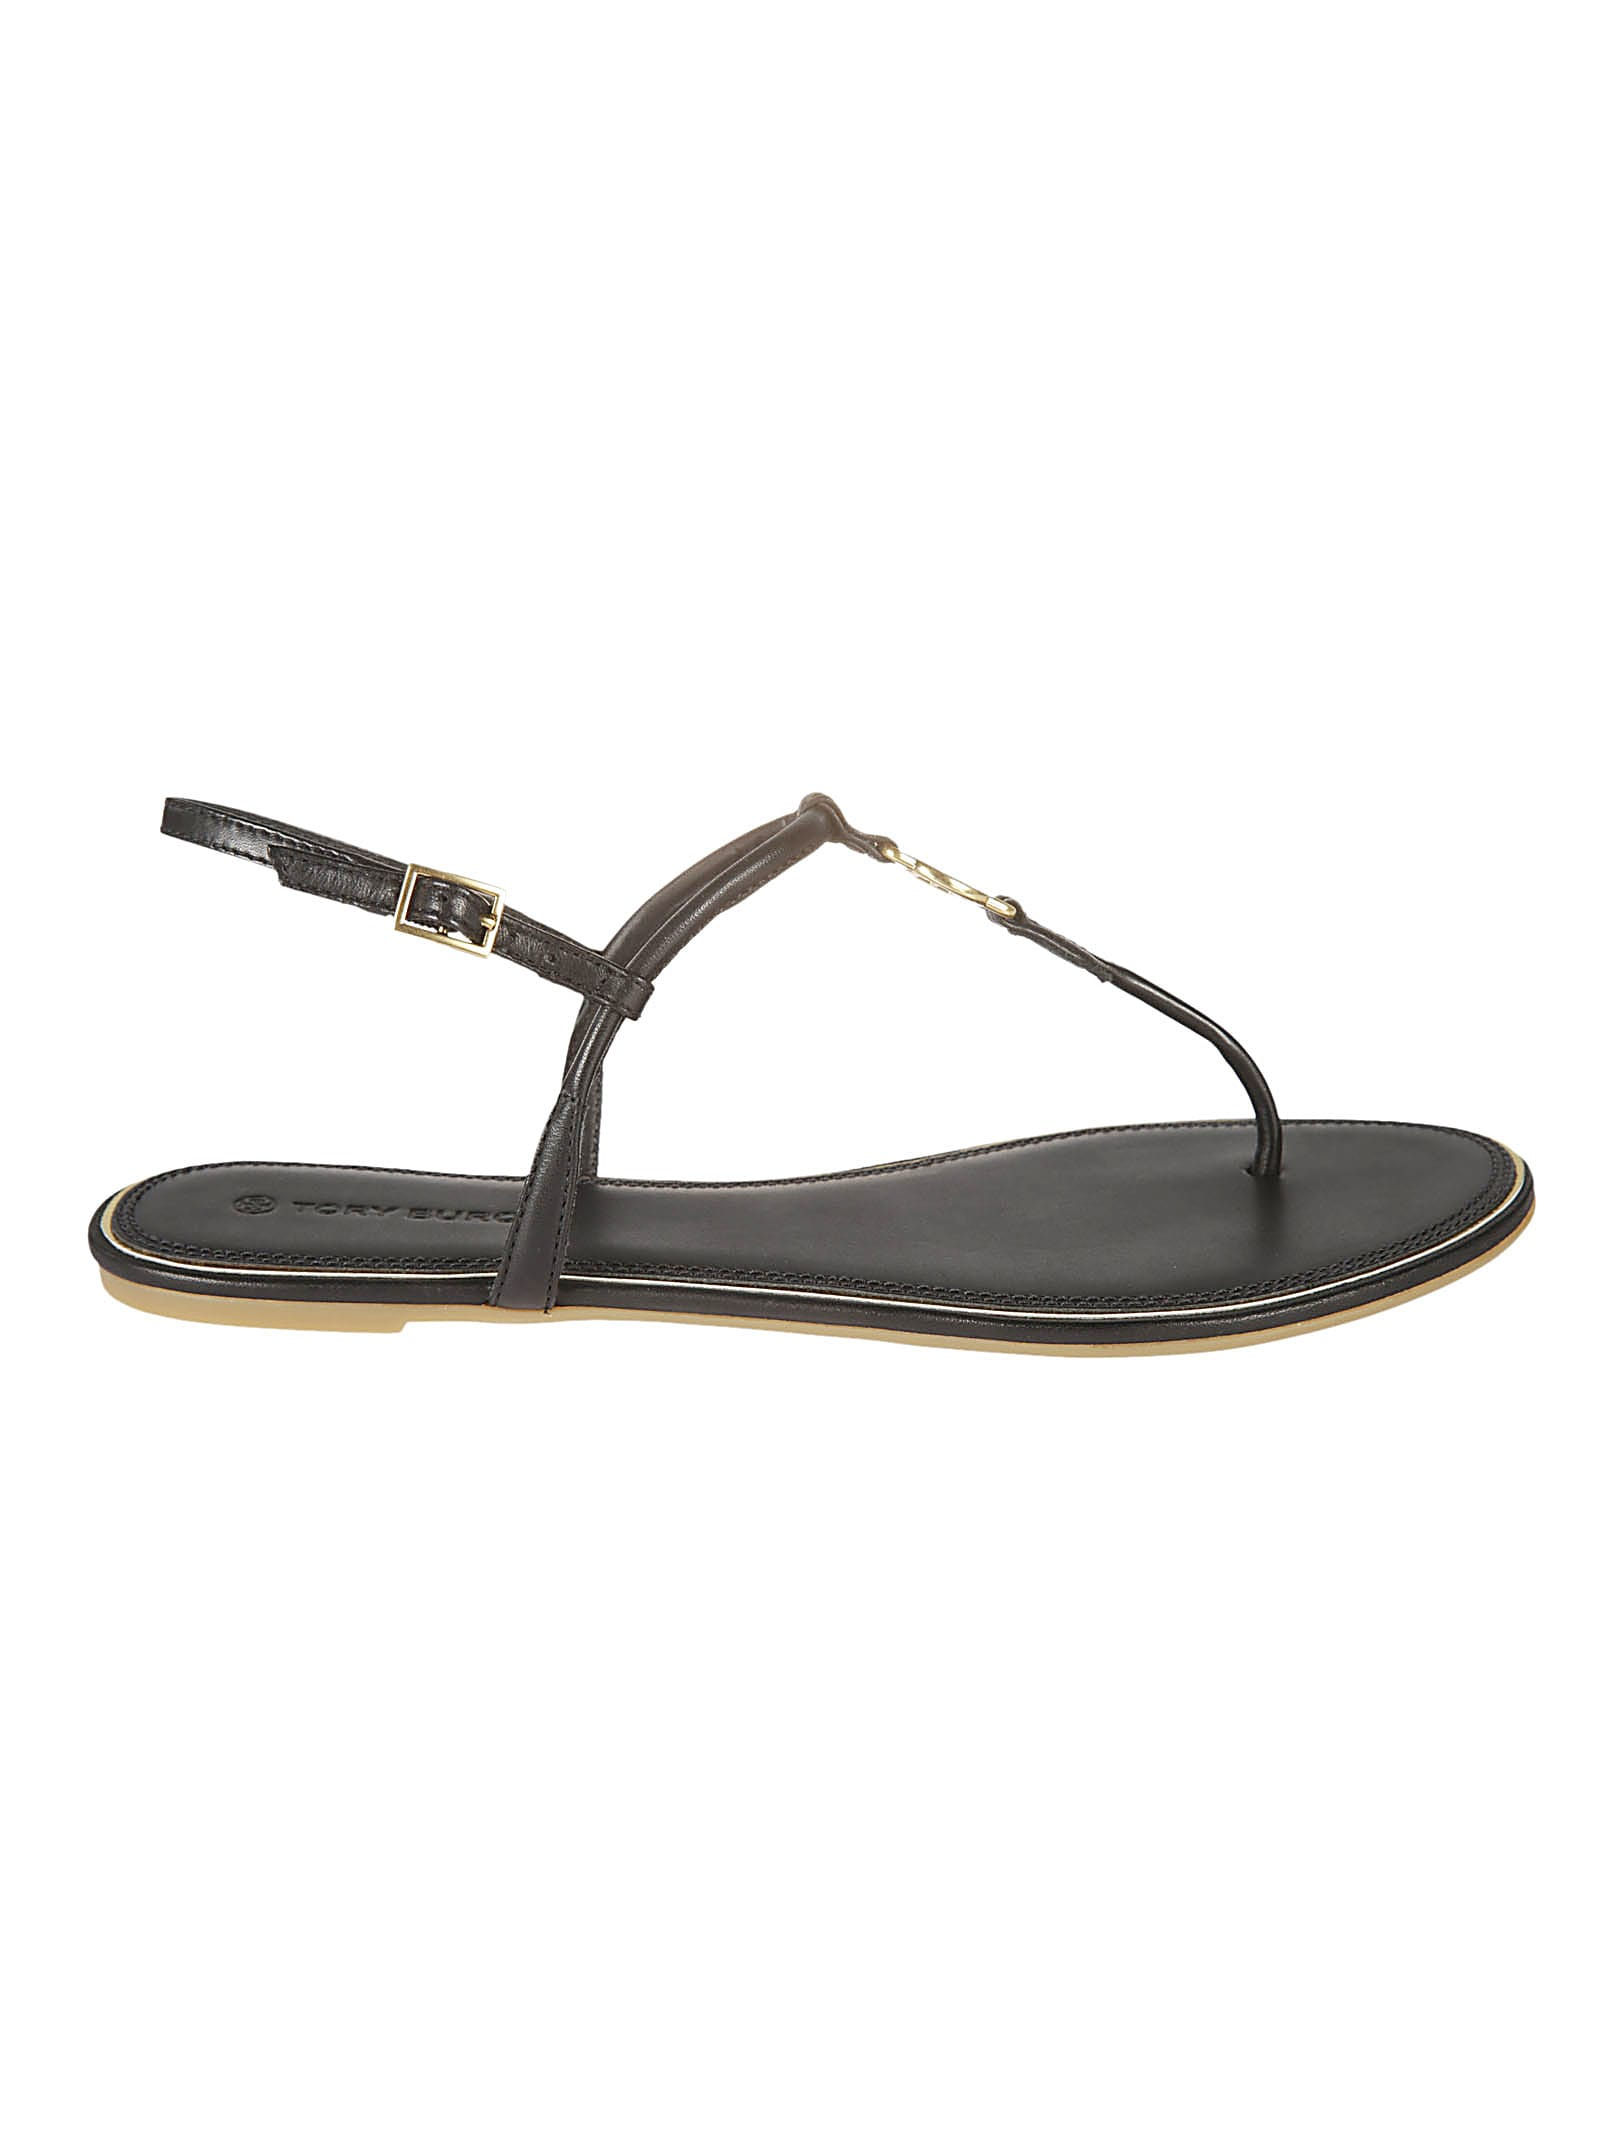 Buy Tory Burch Emmy Flat Sandals online, shop Tory Burch shoes with free shipping